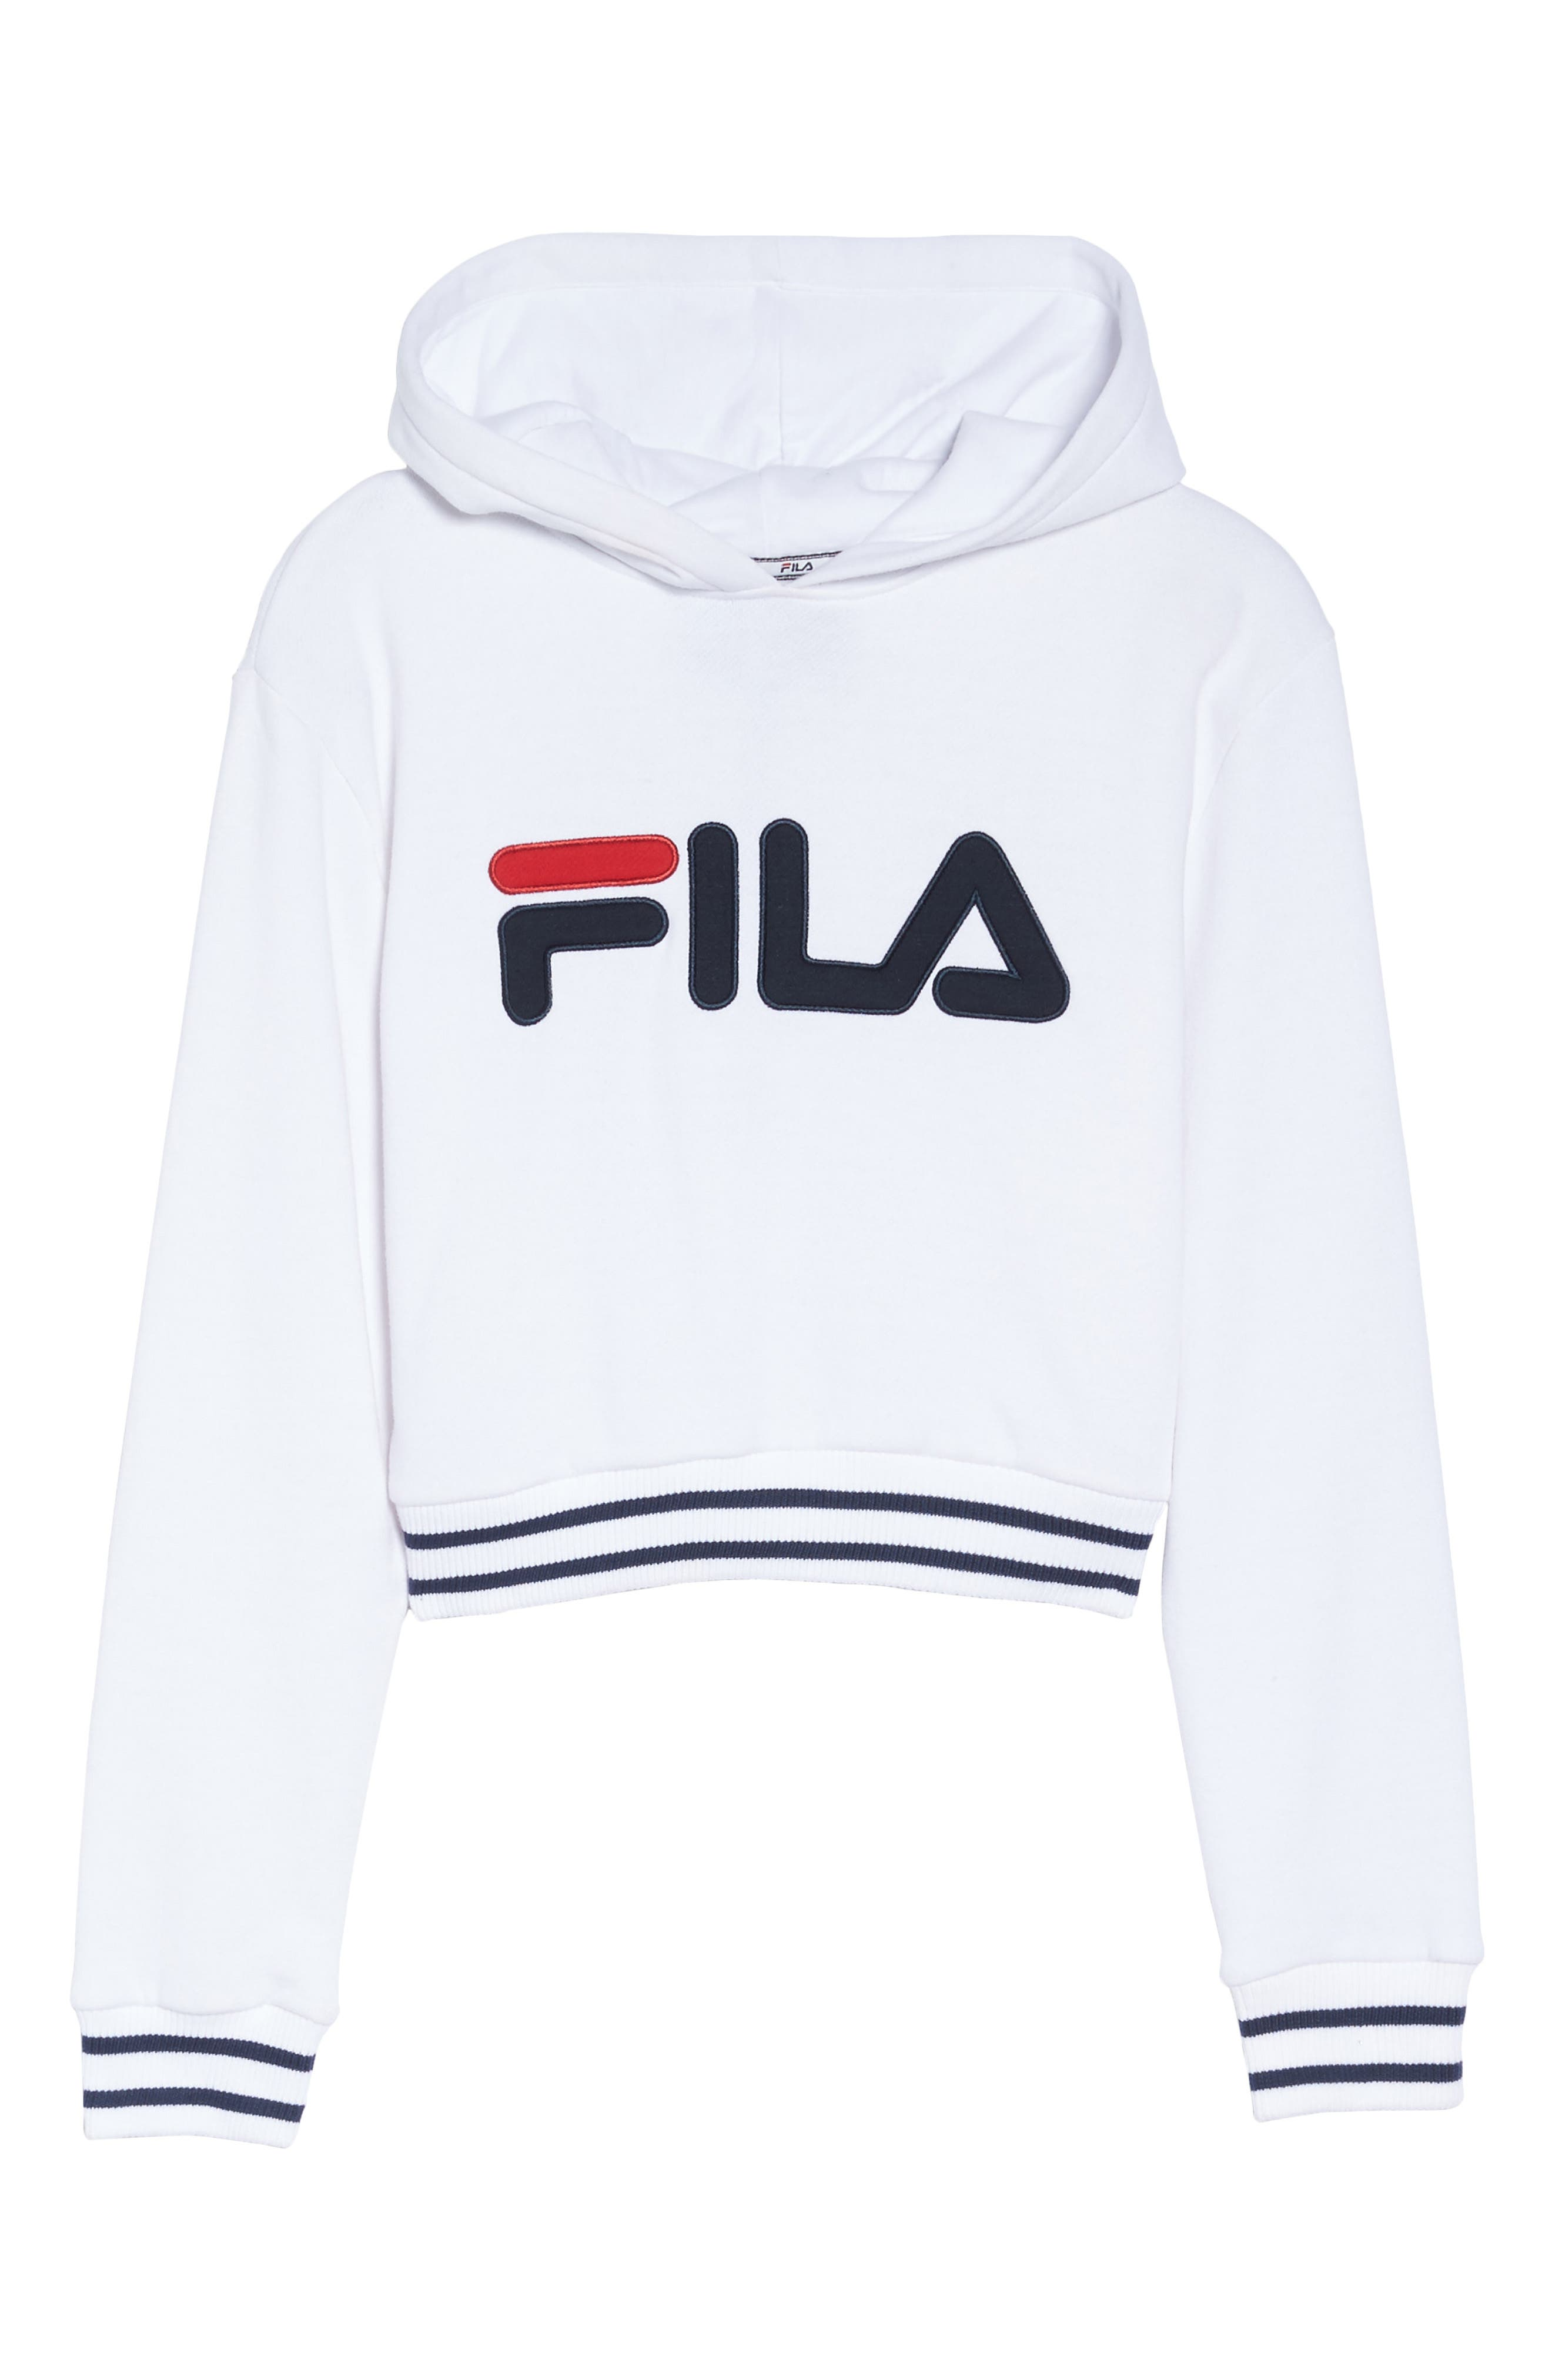 Penelope Crop Hoodie,                             Alternate thumbnail 8, color,                             White/ Navy/ Chinese Red